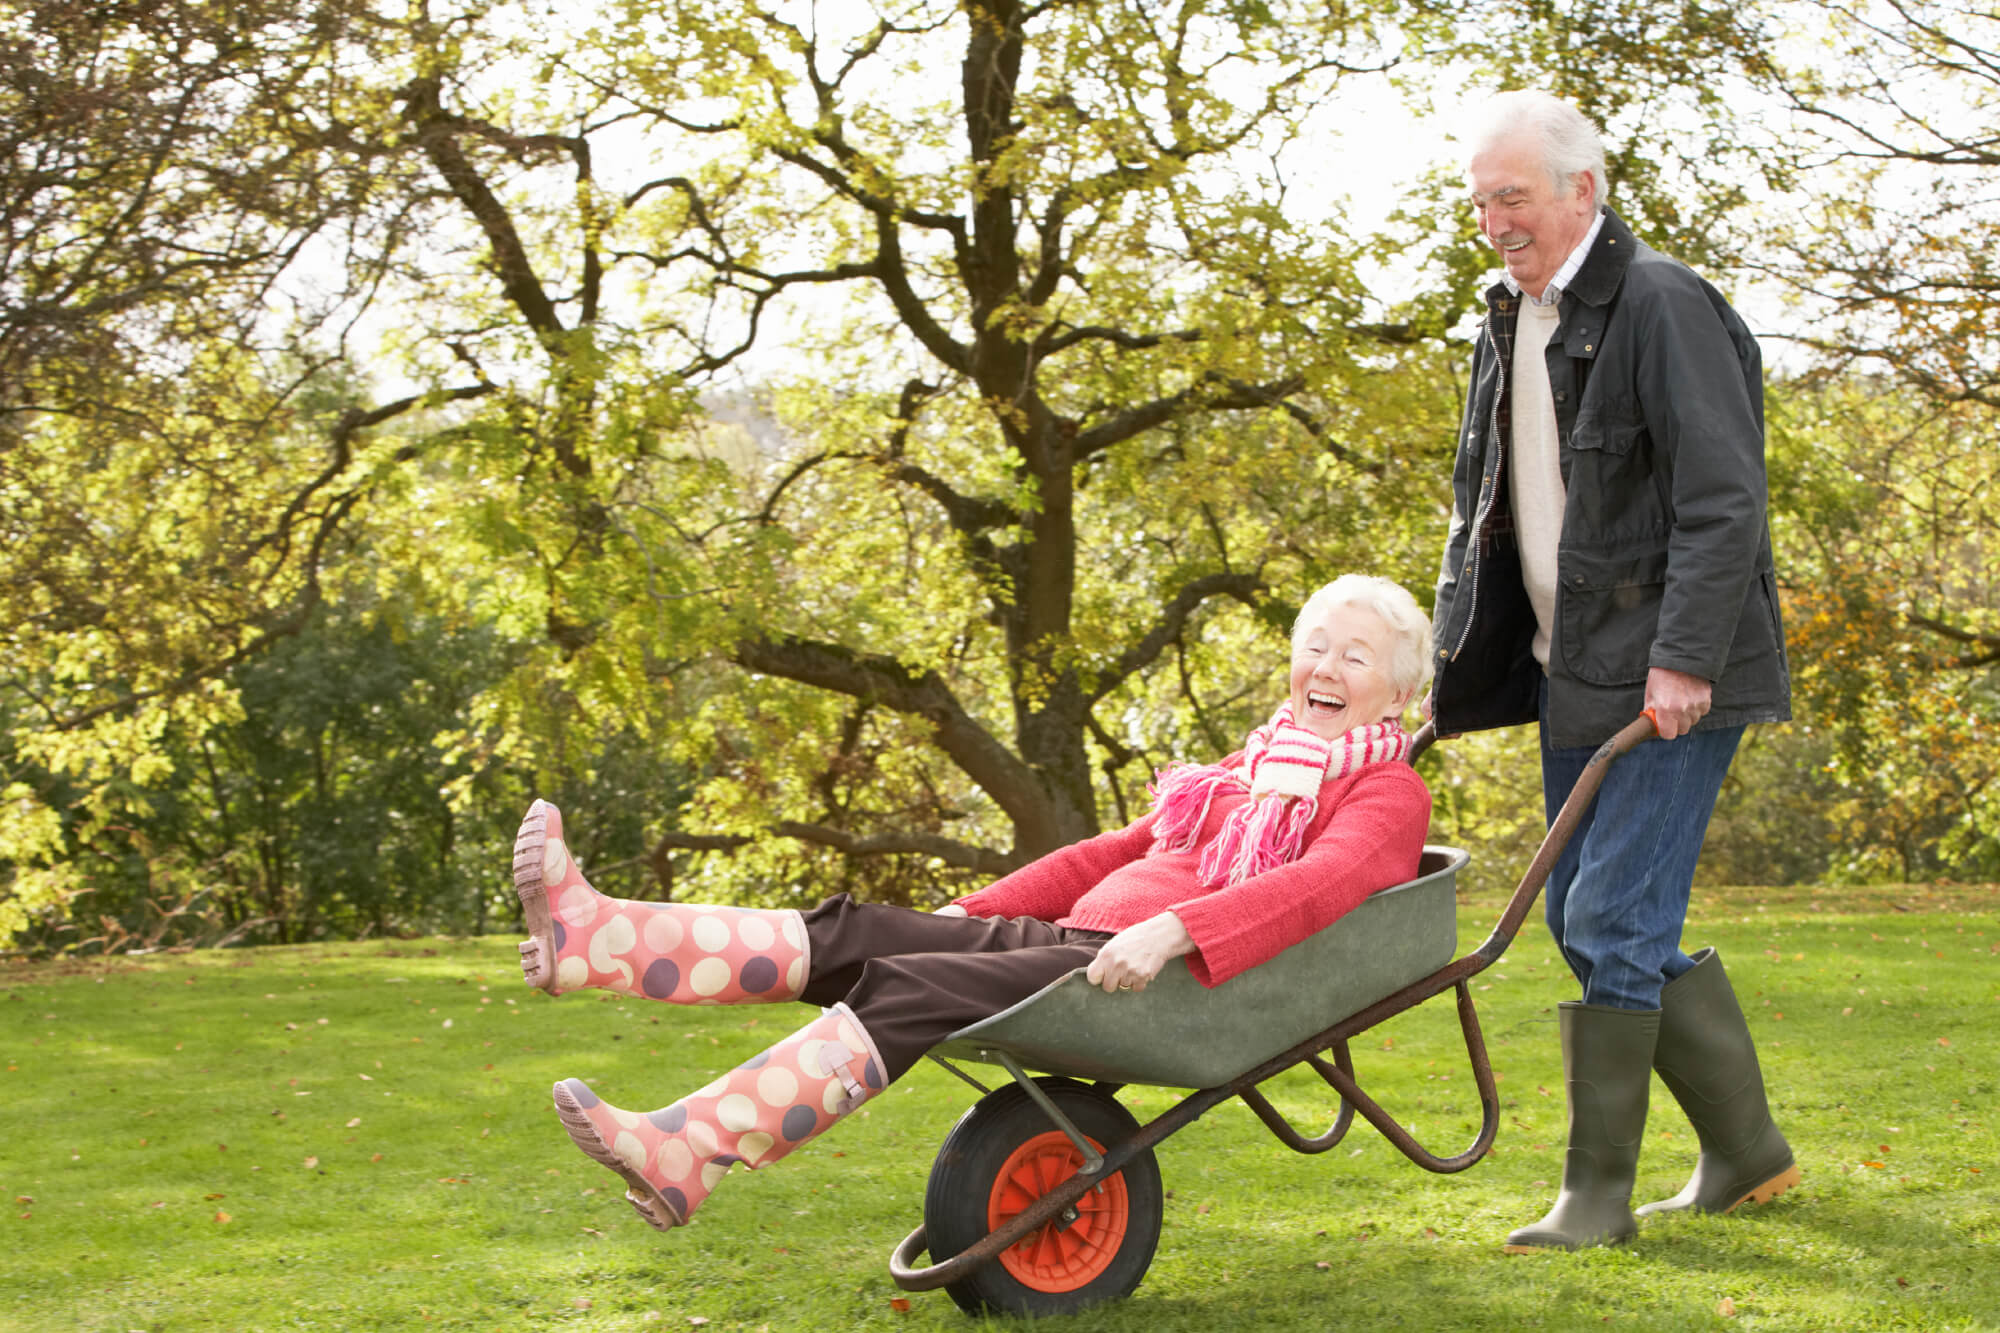 Two residents enjoying the gandens outside as one playfully pushes another in a wheelbarrow